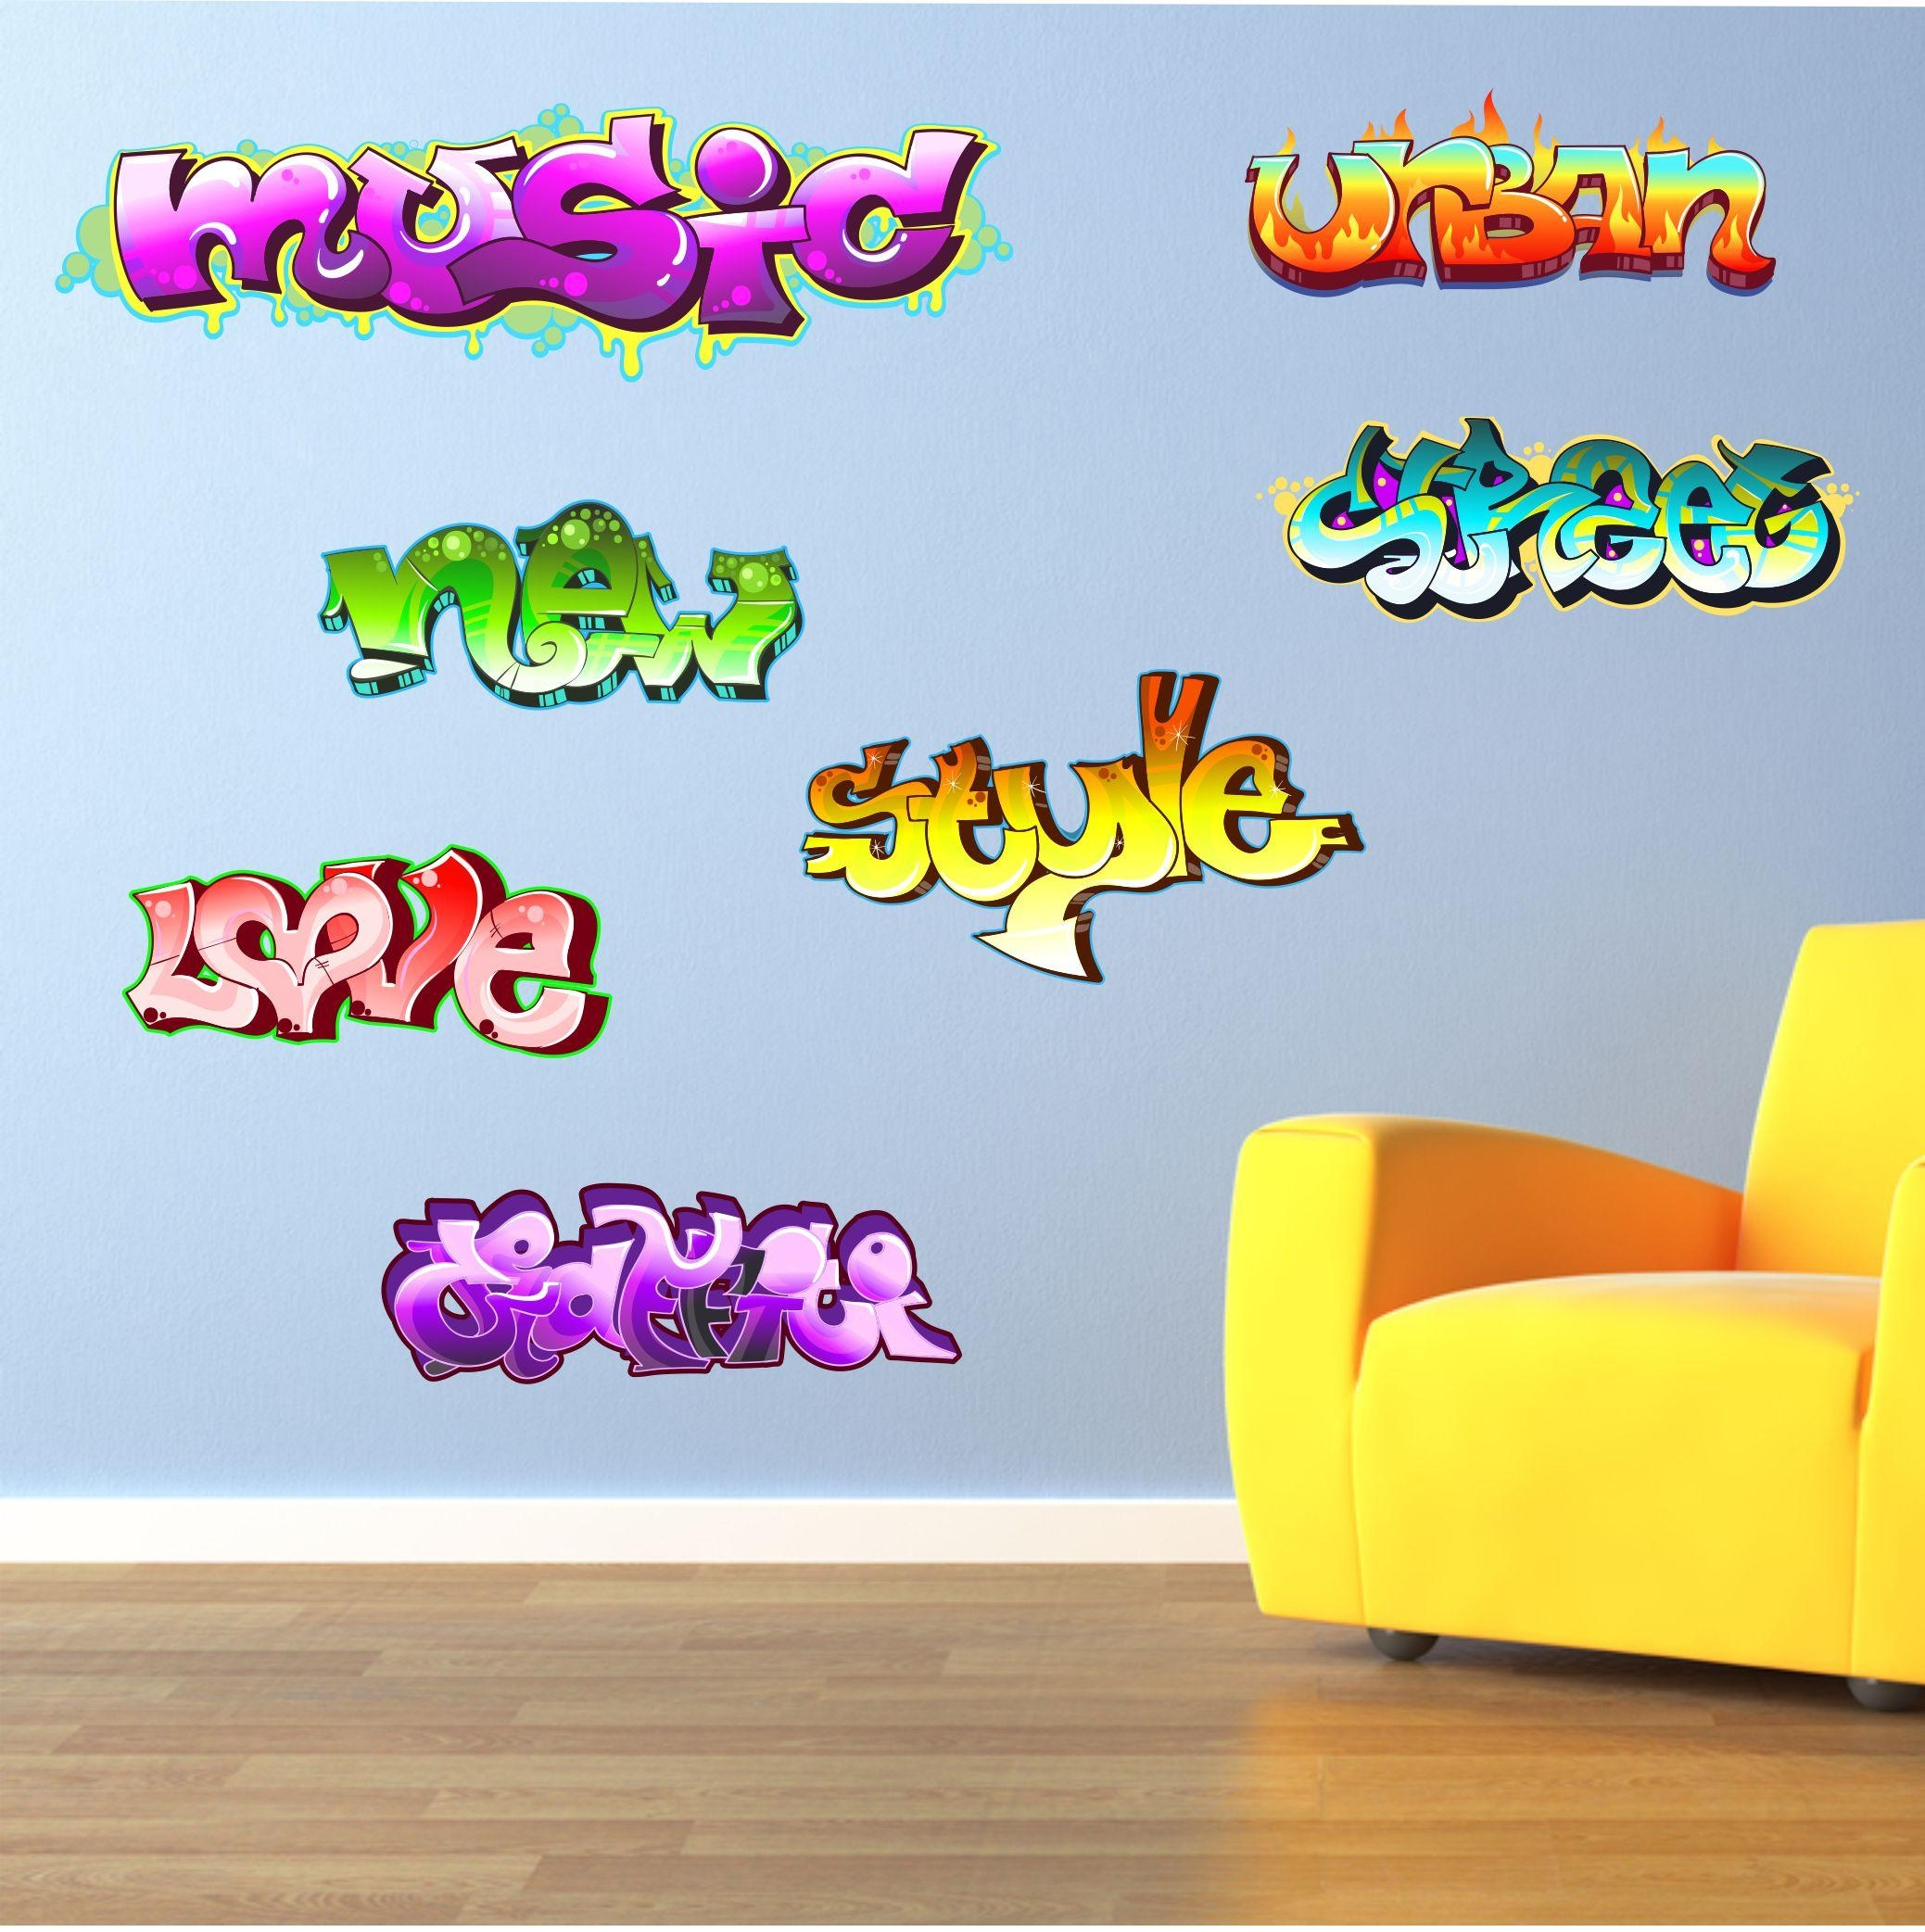 The Grafix Studio | Graffiti Words Wall Art Stickers Within Graffiti Wall Art Stickers (Image 18 of 20)